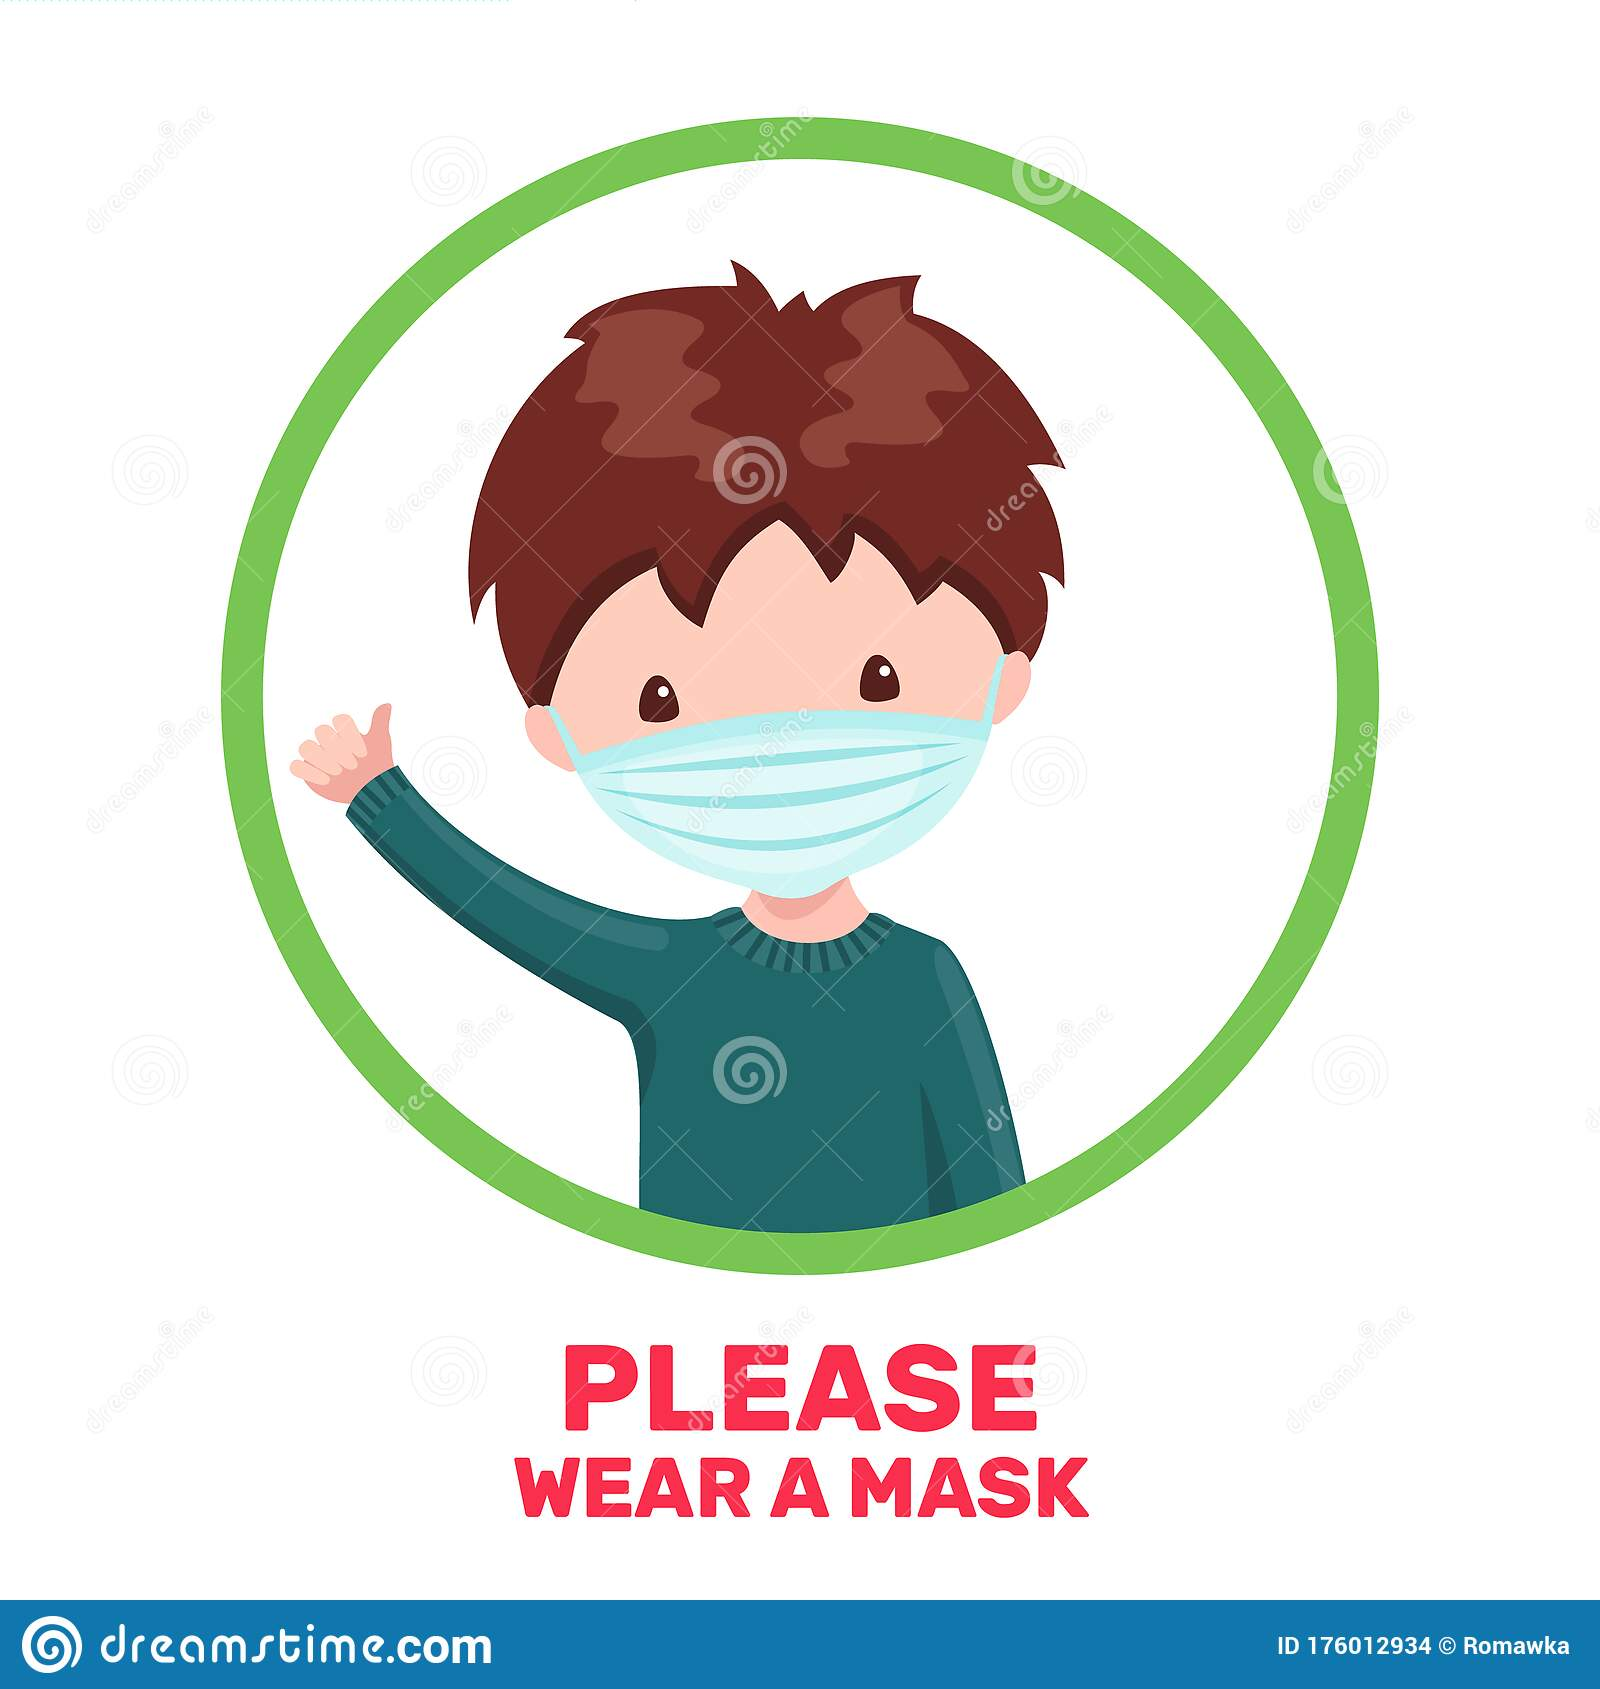 Cute Boy With Medical Mask In Cartoon Style Isolated On White Background  Stock Vector - Illustration of background, male: 176012934